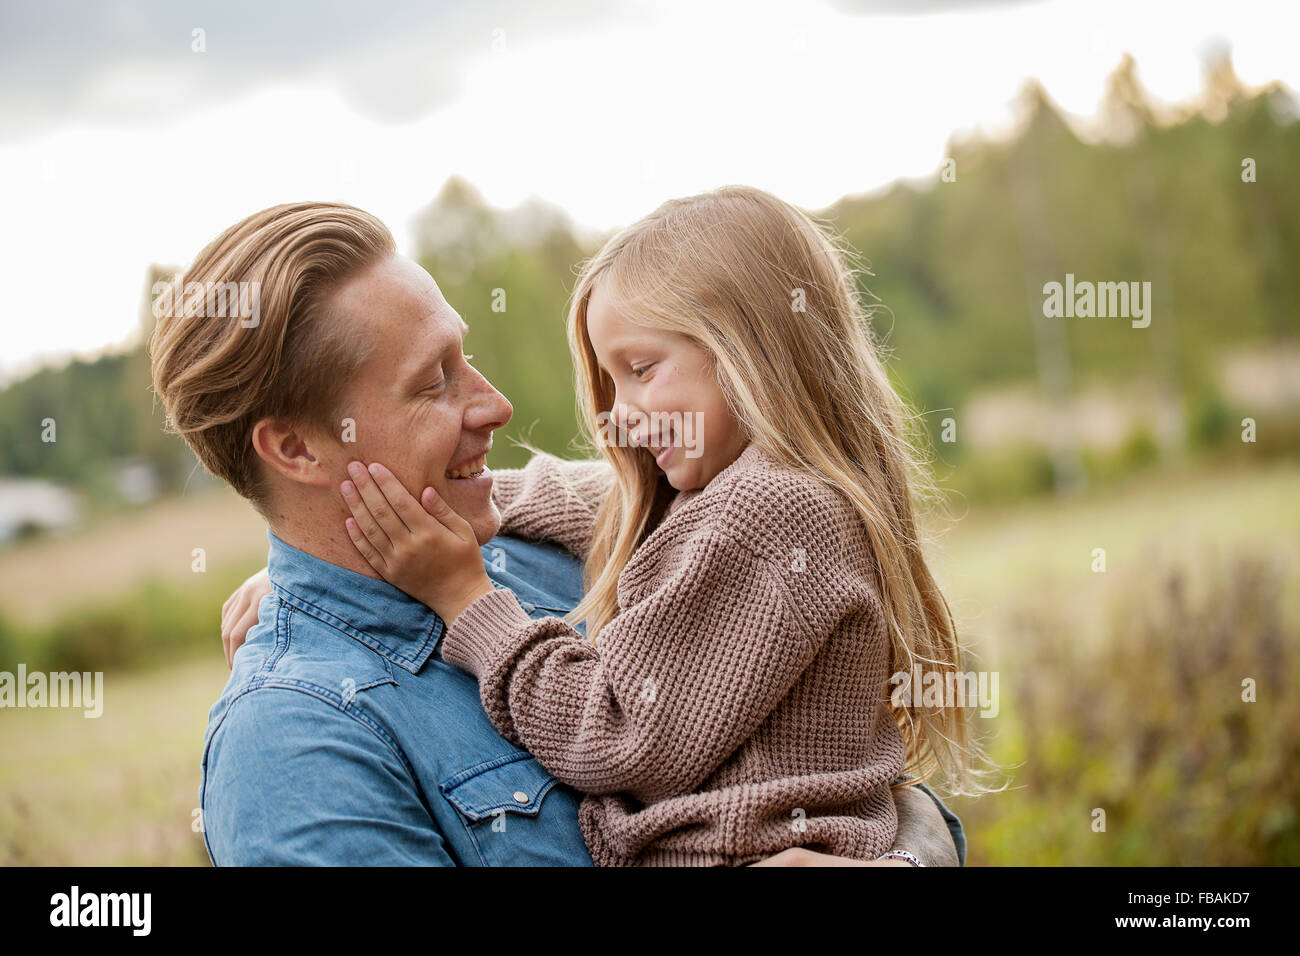 Finland, Uusimaa, Raasepori, Karjaa, Father bonding with his daughter (6-7) - Stock Image